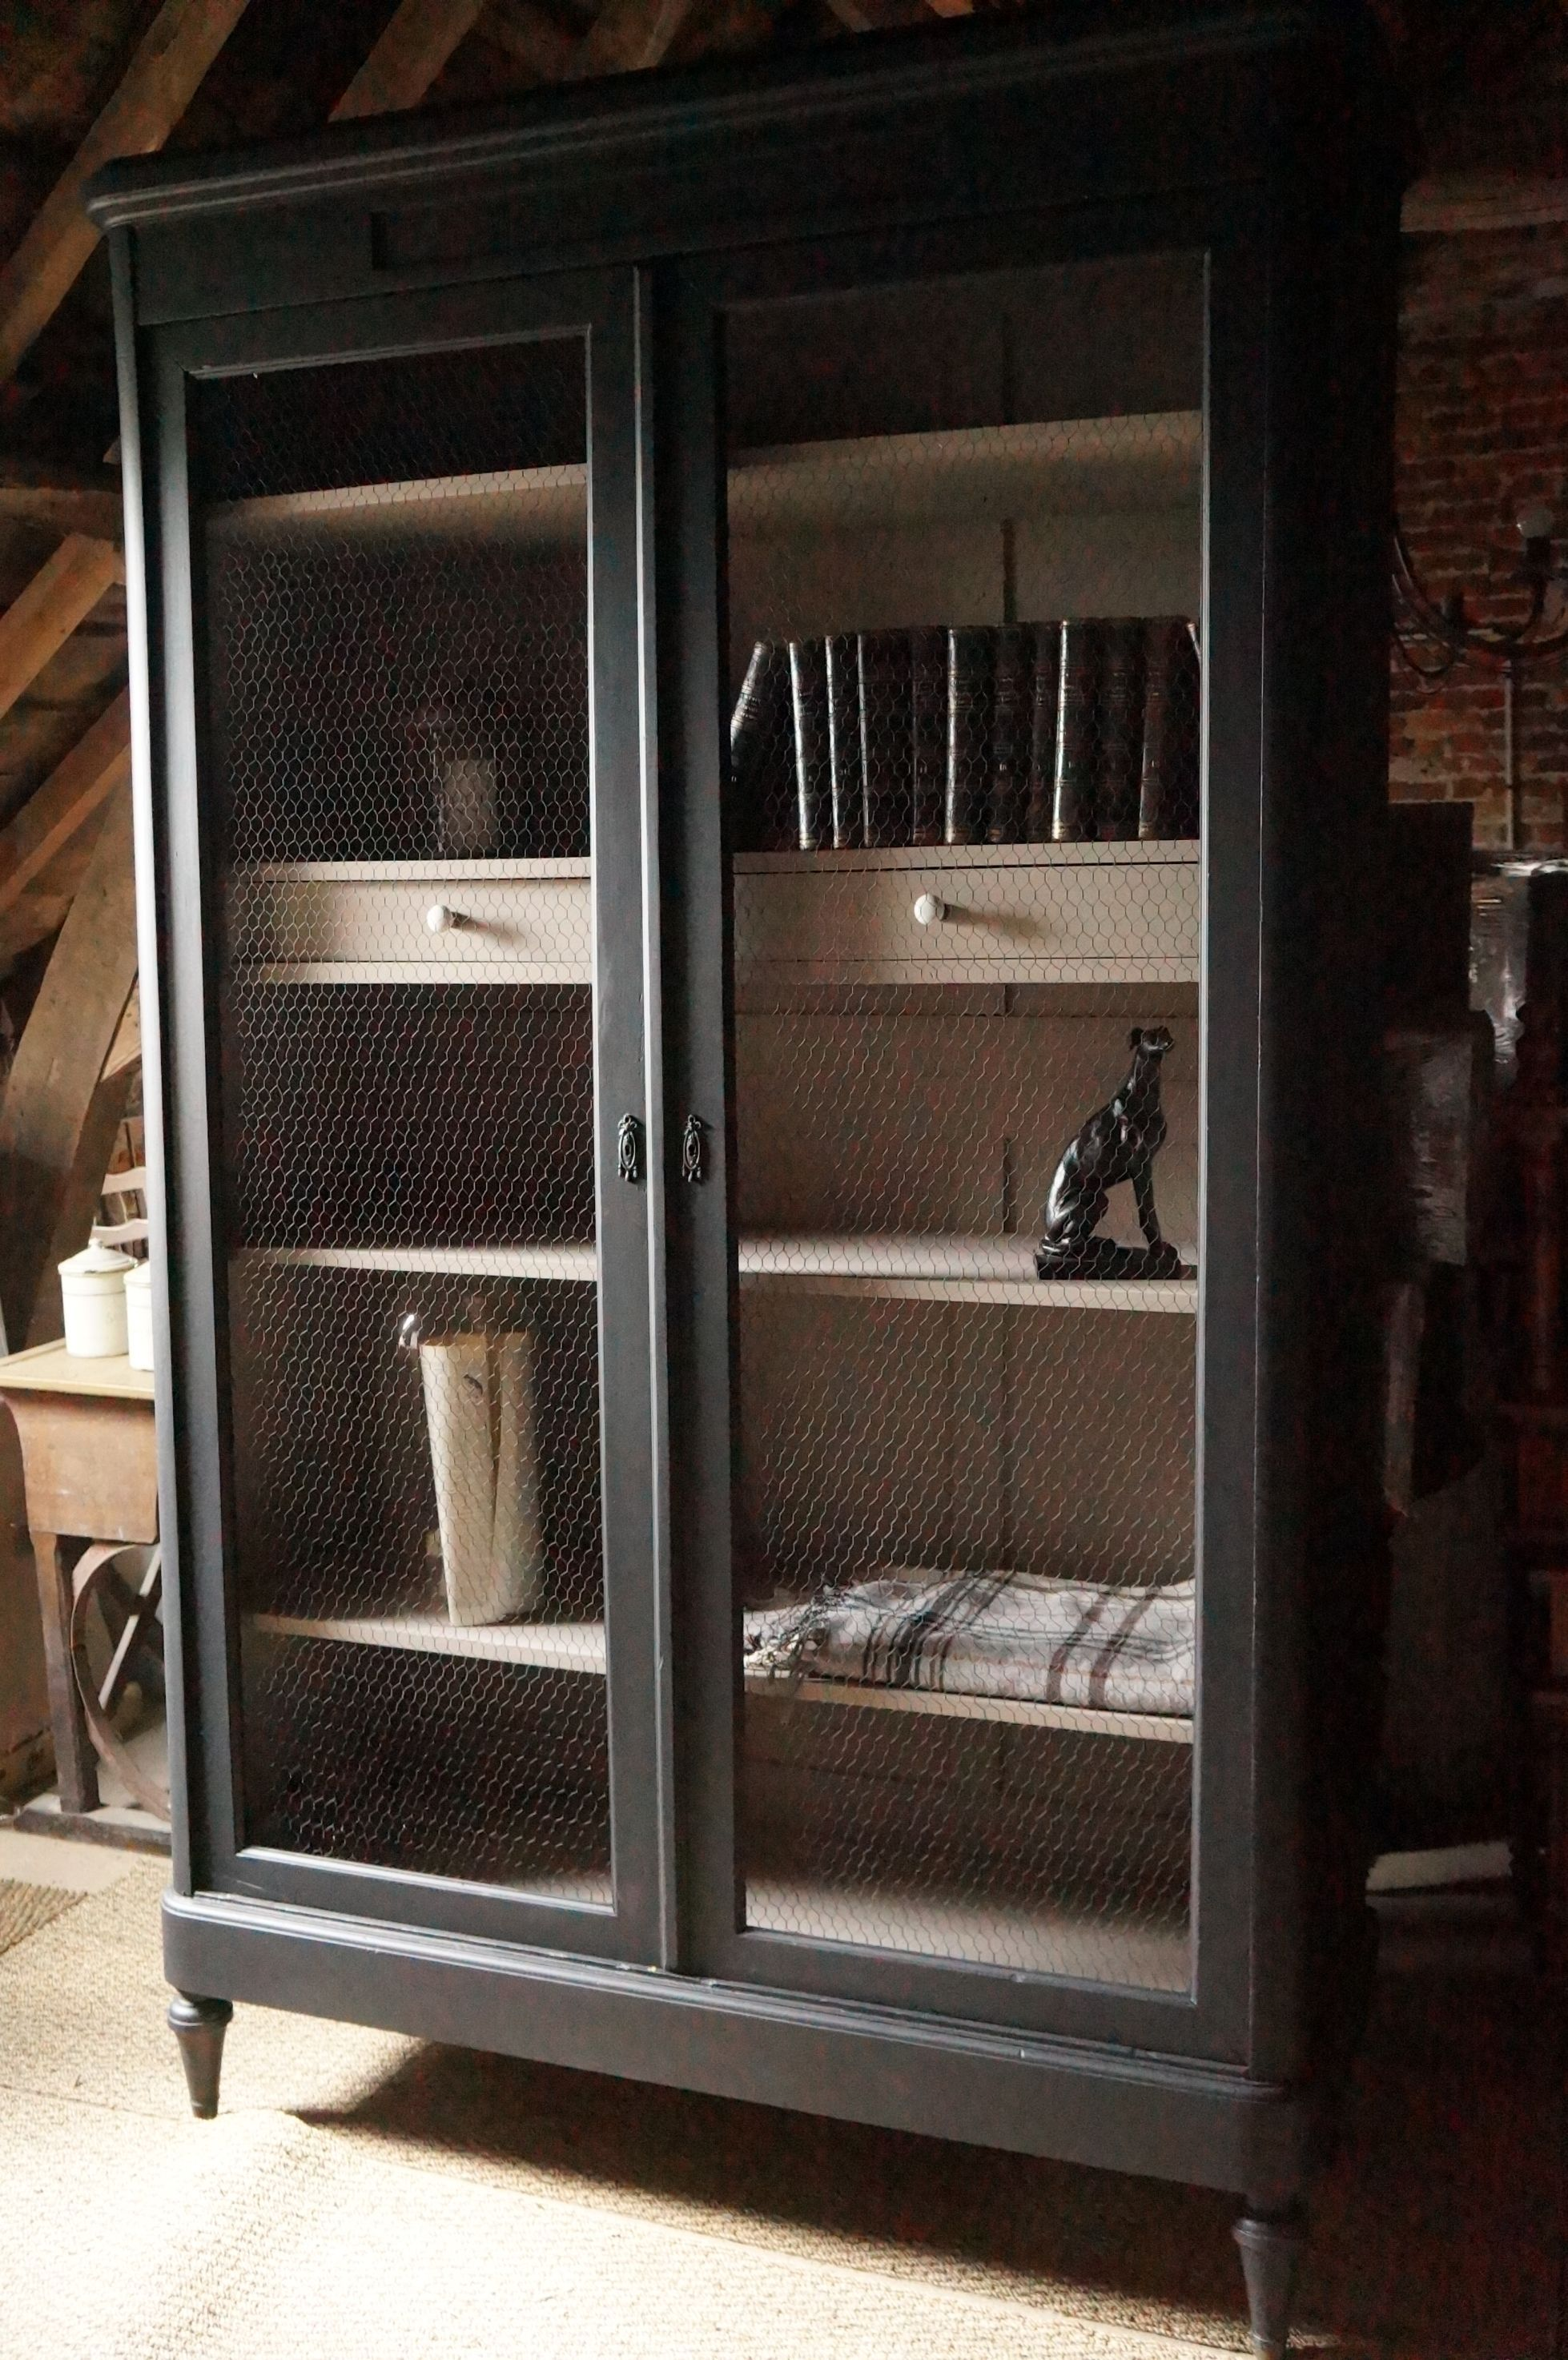 Armoire Bibliotheque Rangement Patinee Noire Cage A Poule Style Vintage Relooking Armoire Bibliotheque Rangement Relooking Meuble Ancien